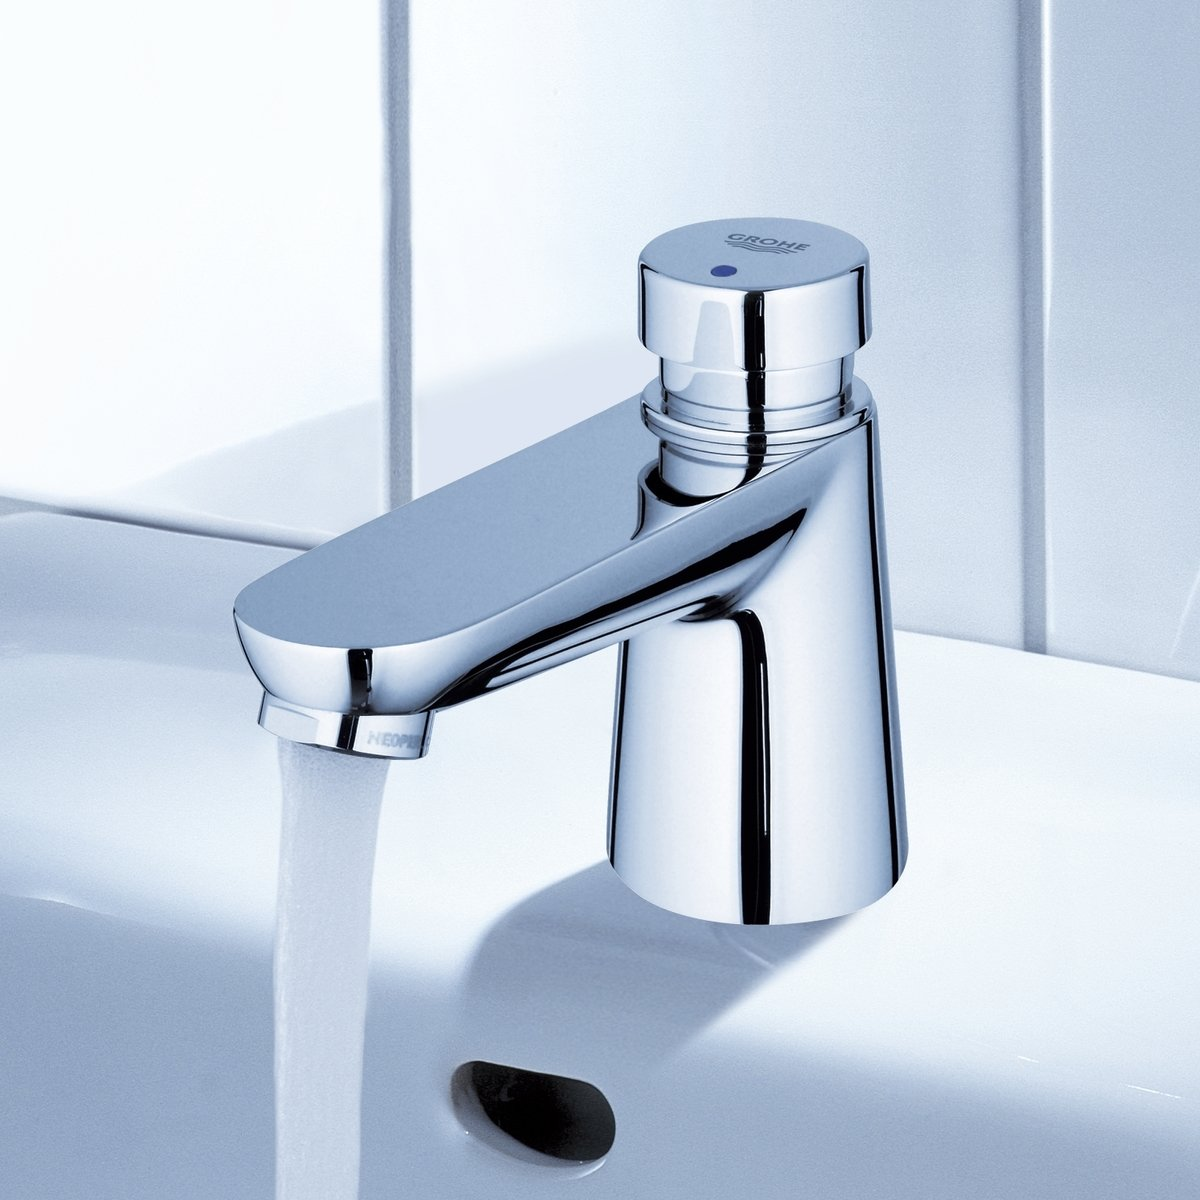 Magnificent Groe Faucets Mold - Faucet Collections - thoughtfire.info